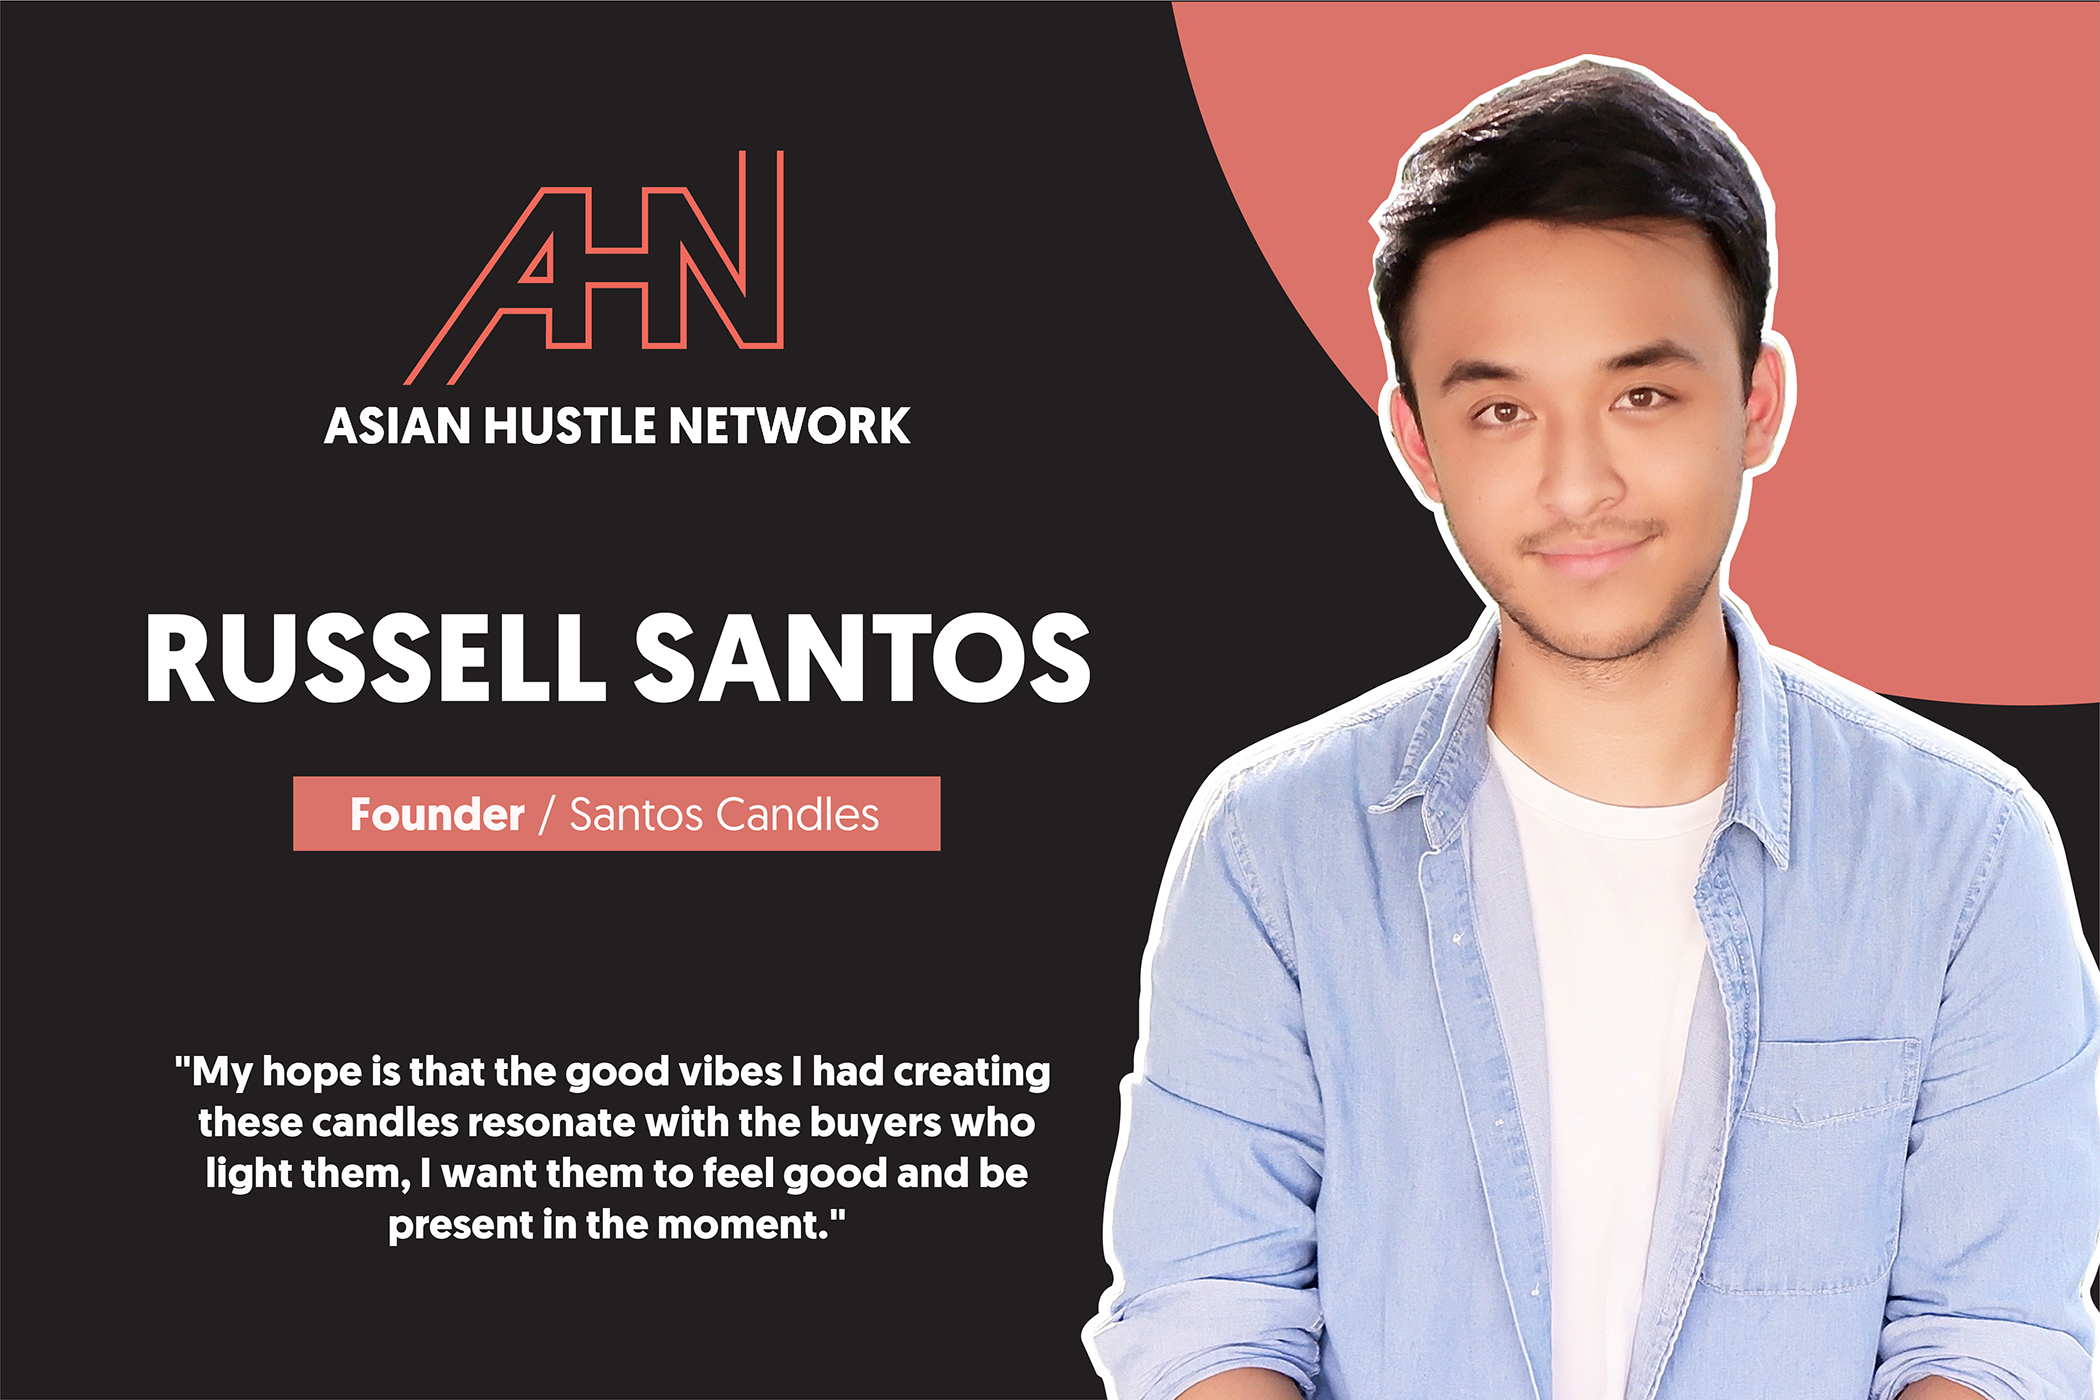 Russell Santos, founder of Santos Candles, on an Asian Hustle Network banner.